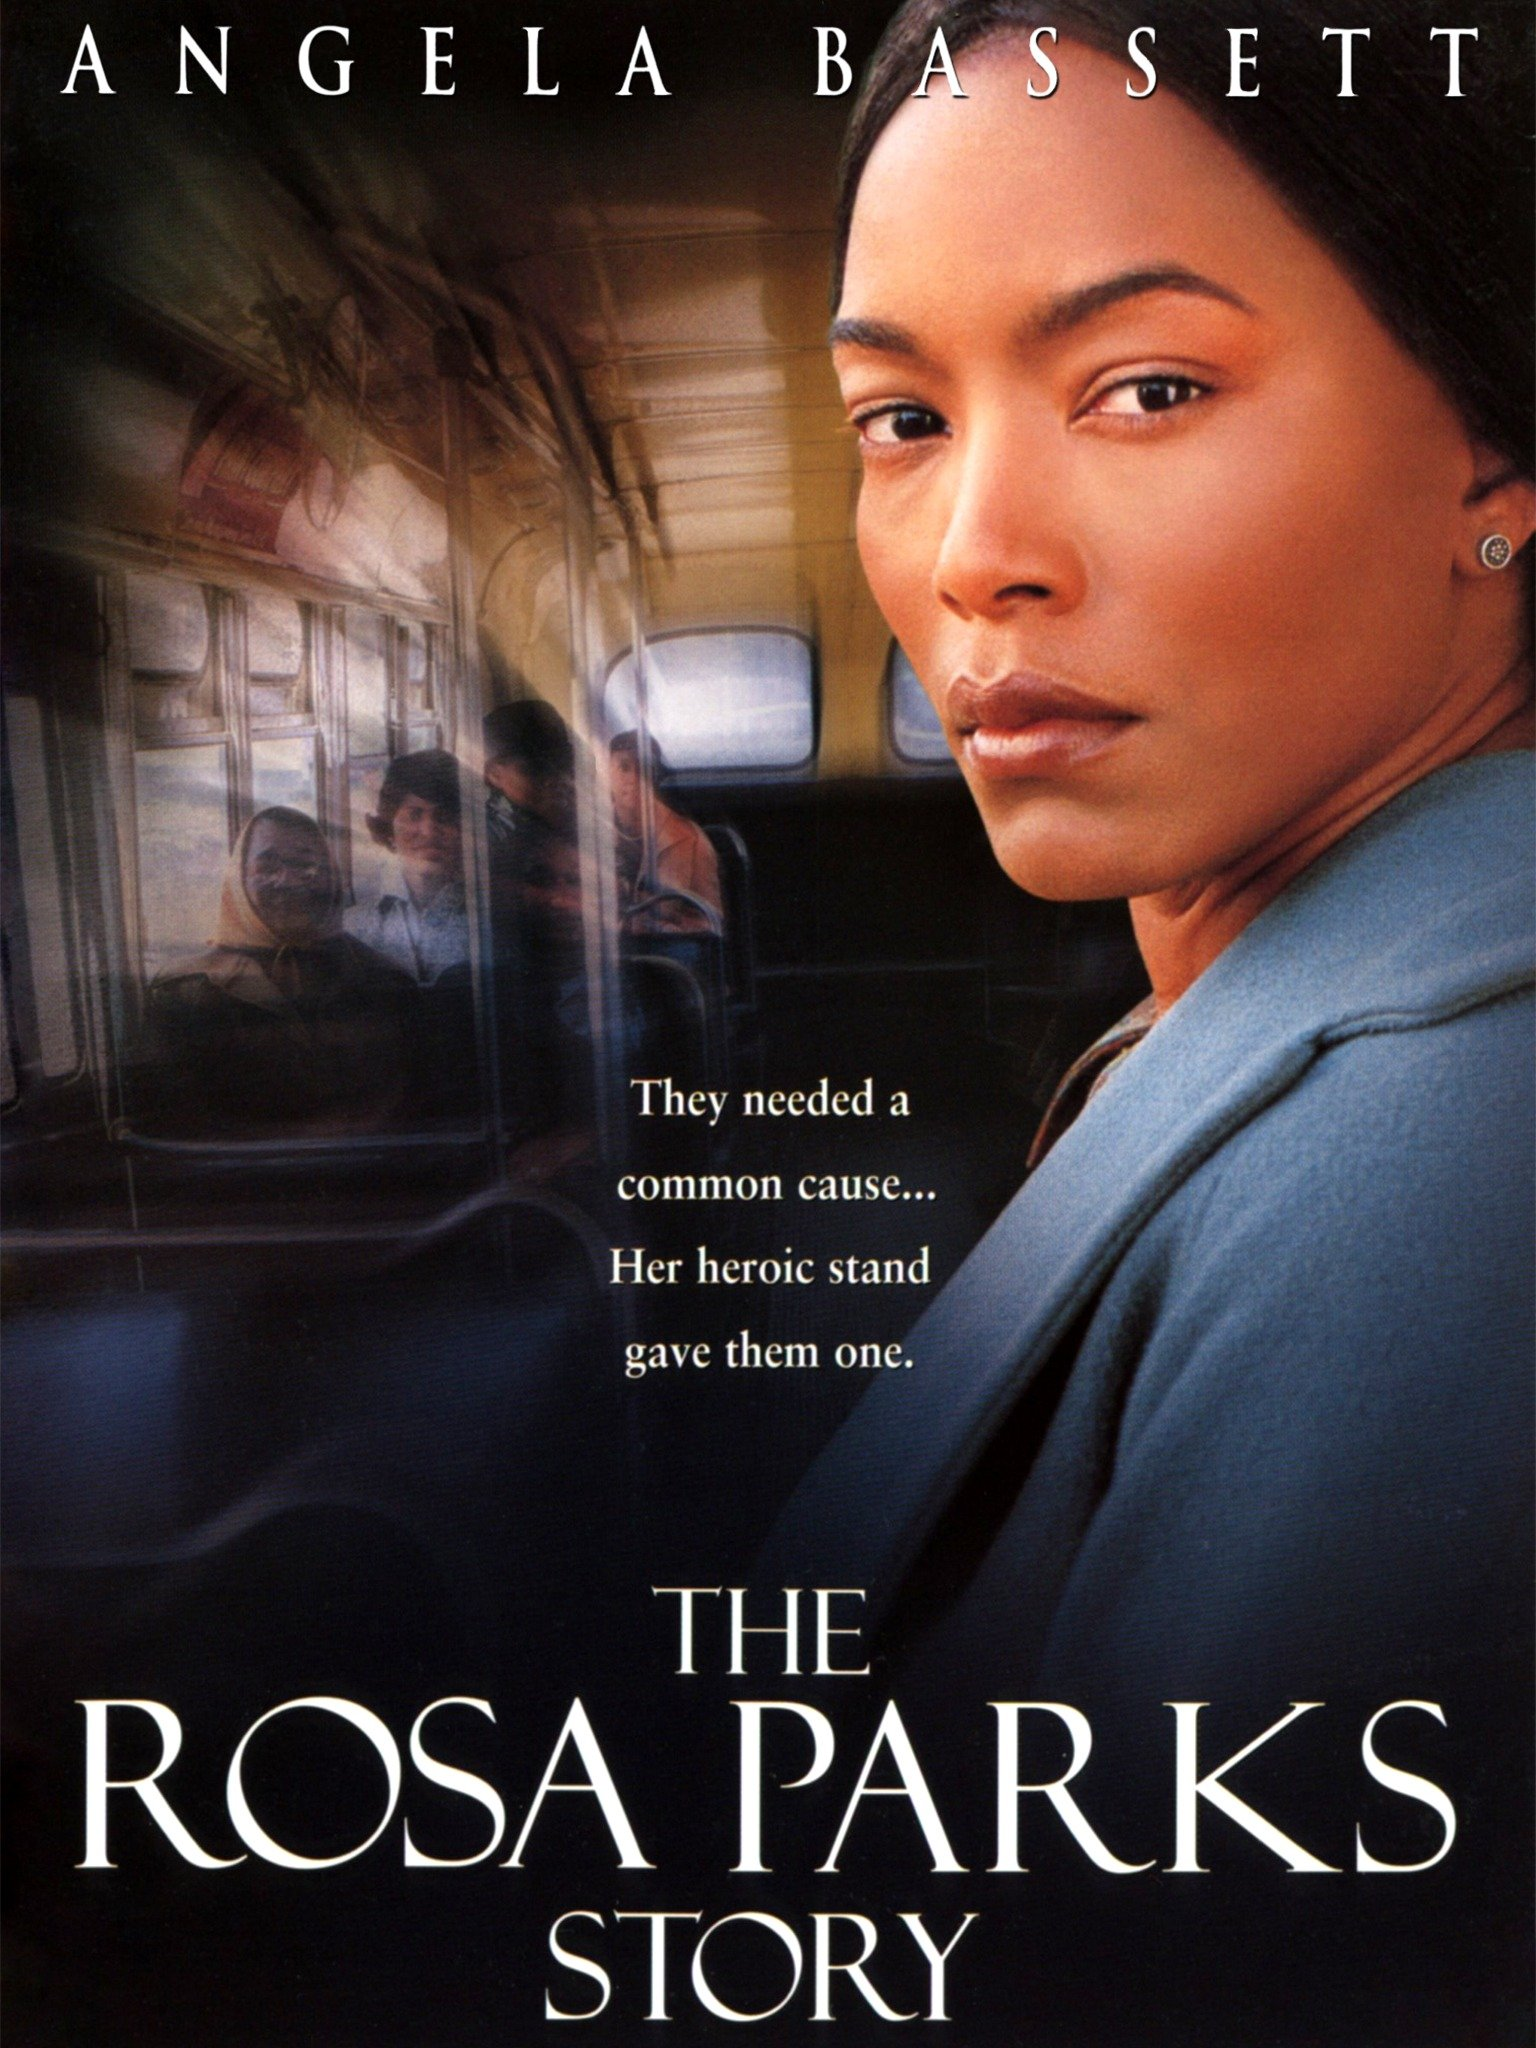 Behind the Movement: The Rosa Parks Story